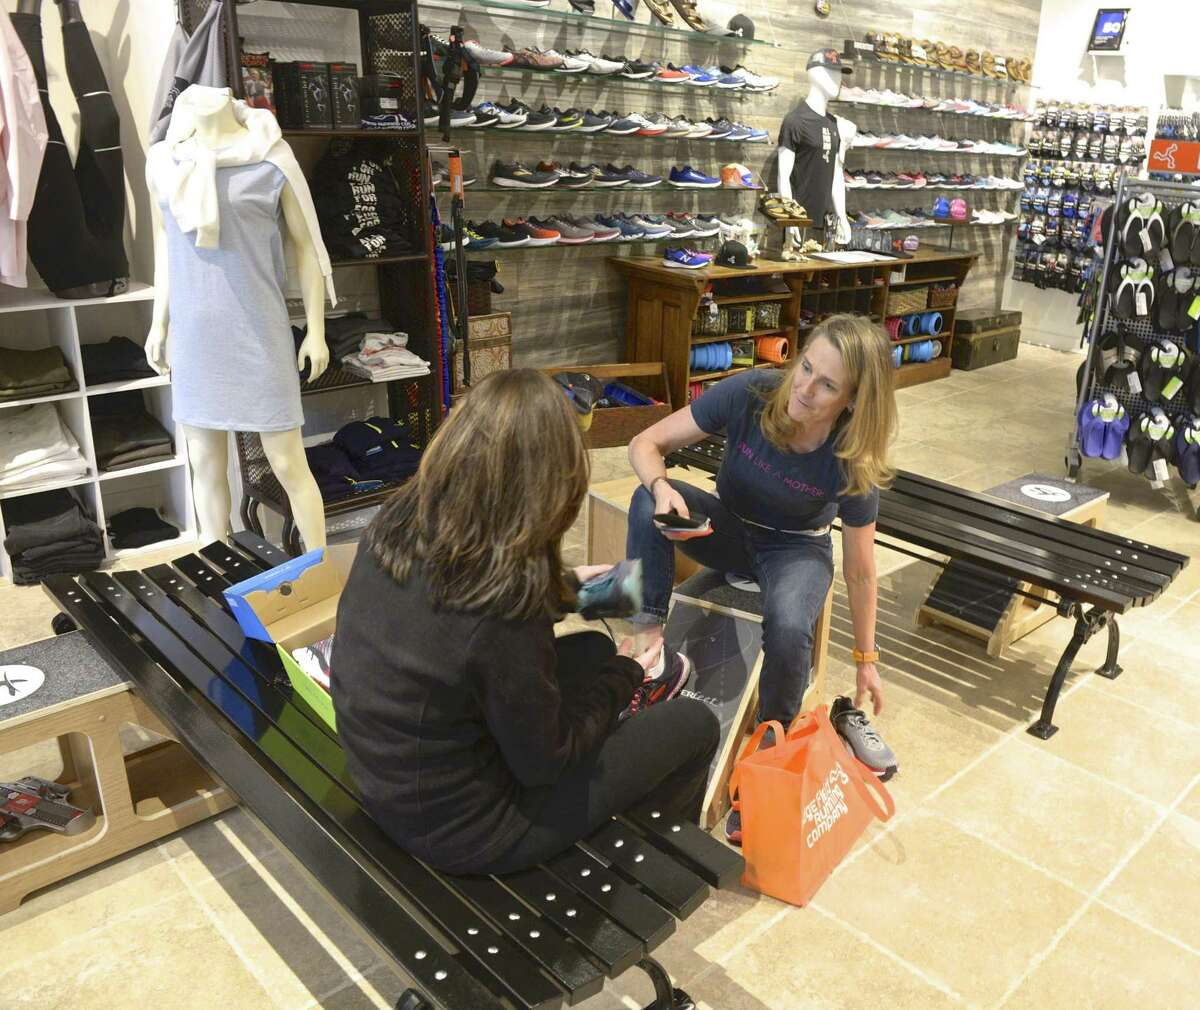 Megan Searfoss, owner of the Ridgefield Running Co., right, works with Jodi Costenbader, of Redding, who was shopping for athletic shoes. Searfoss started the Run Like A Mother 5K in 2008. Thursday, May 9, 2019, in Ridgefield, Conn.